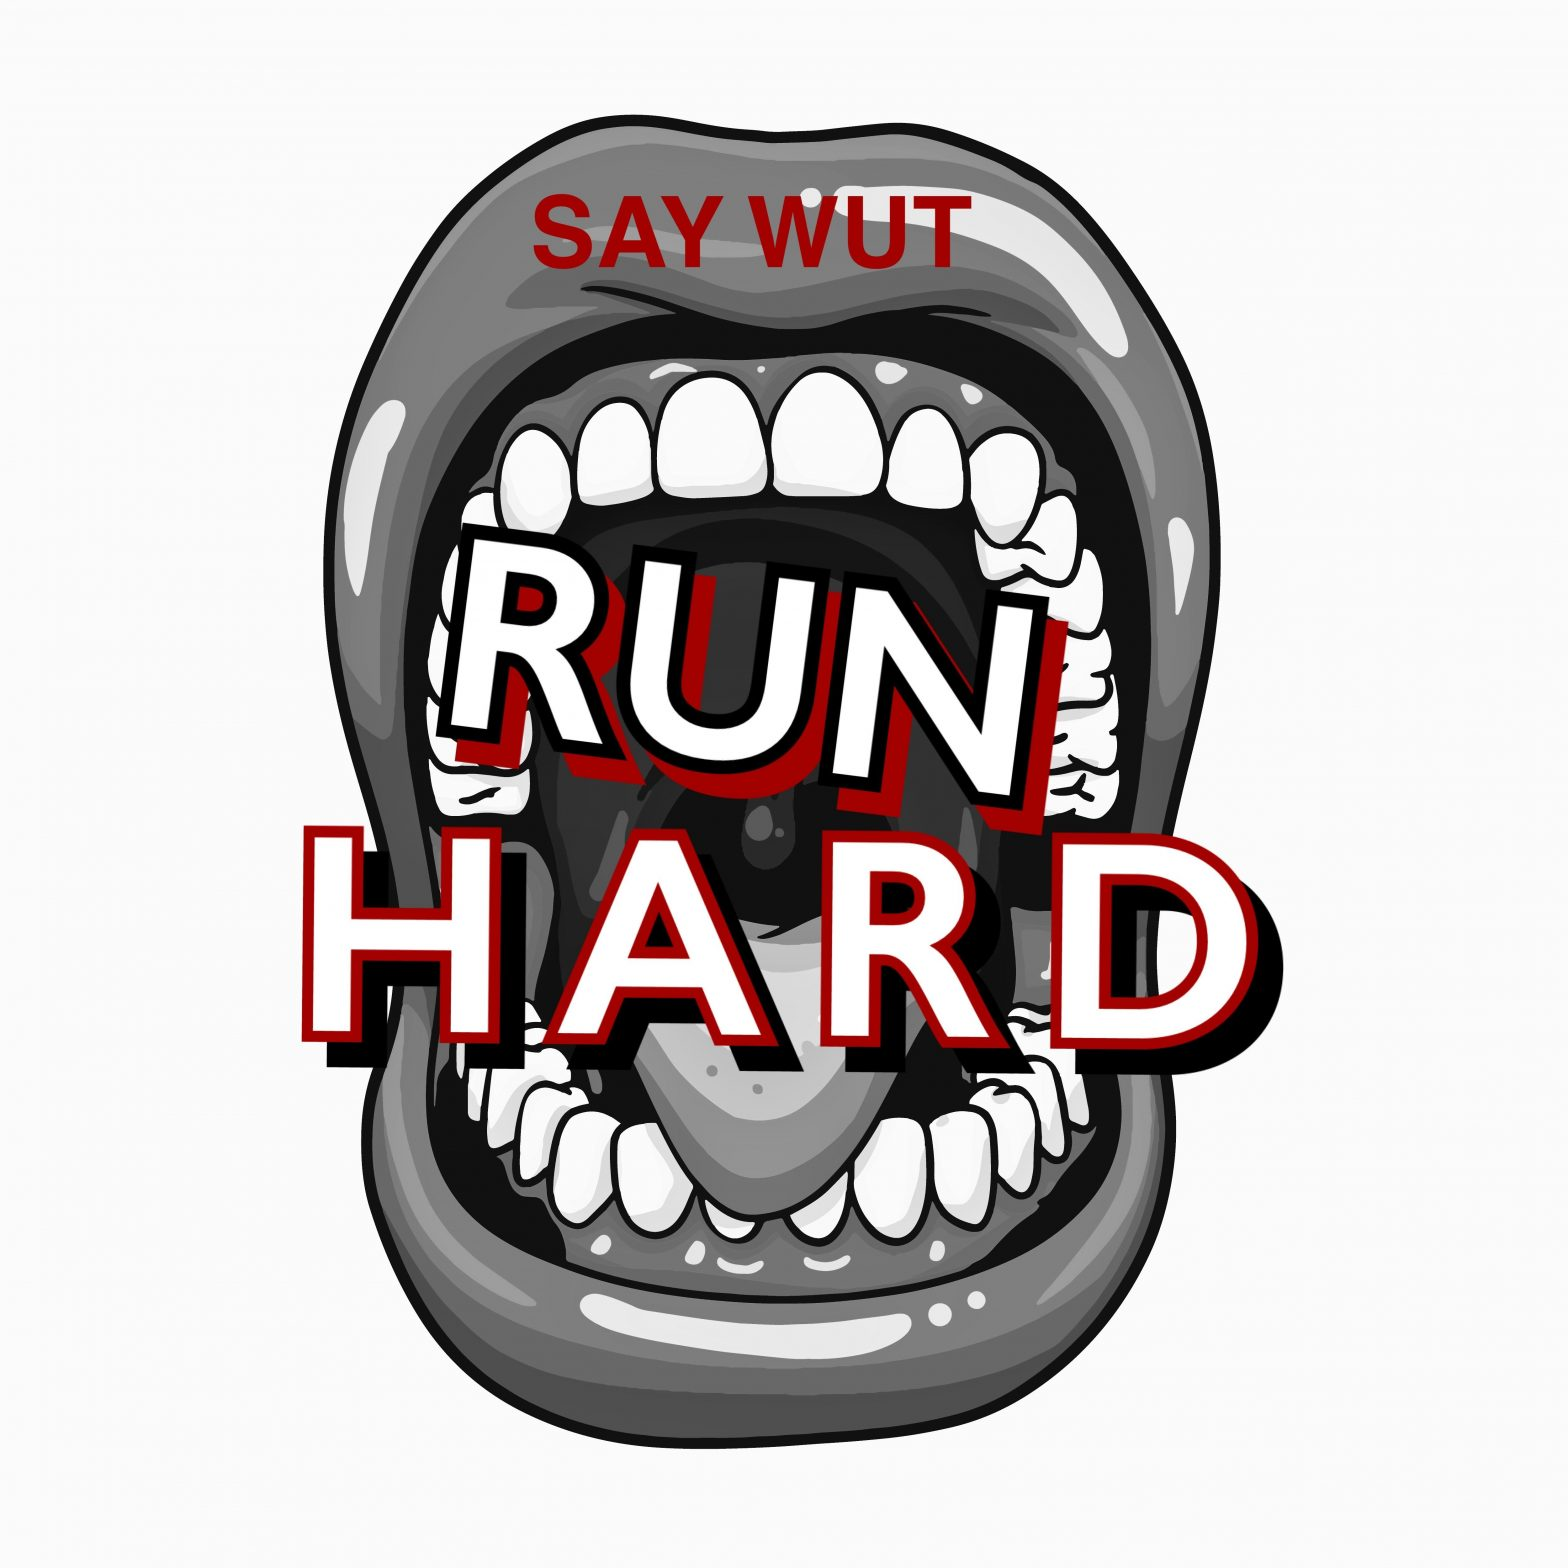 say wut - run hard